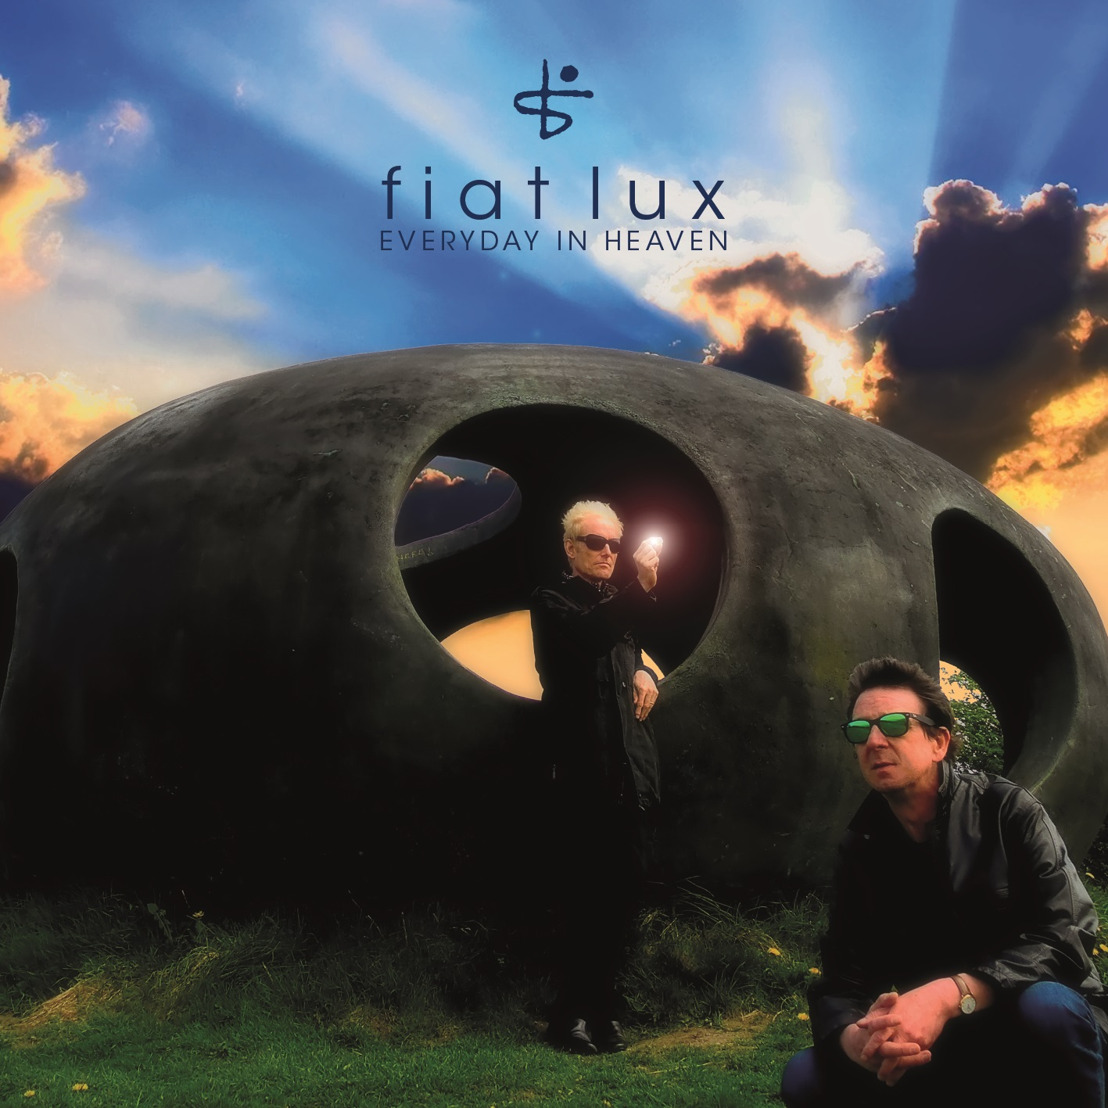 The remarkable comeback of FIAT LUX — the great lost band set to return